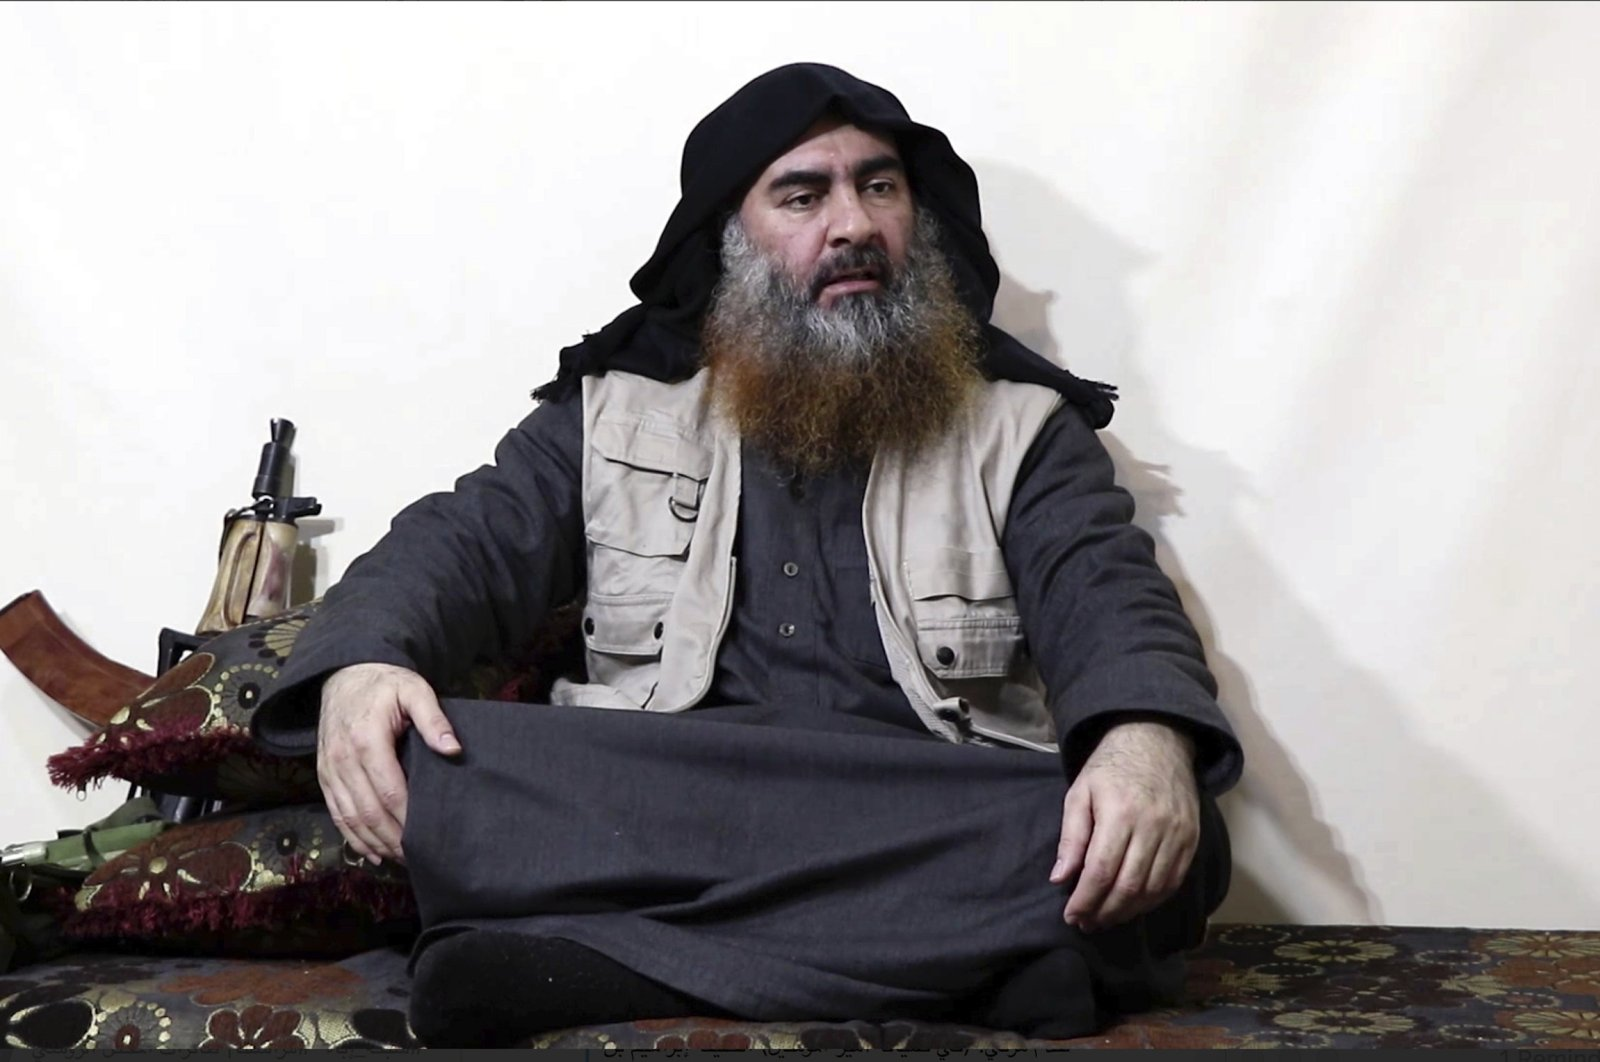 This file image made from video posted on a militant website on April 29, 2019, purports to show the leader of Daesh, Abu Bakr al-Baghdadi, being interviewed by his group's Al-Furqan media outlet. (AP Photo)